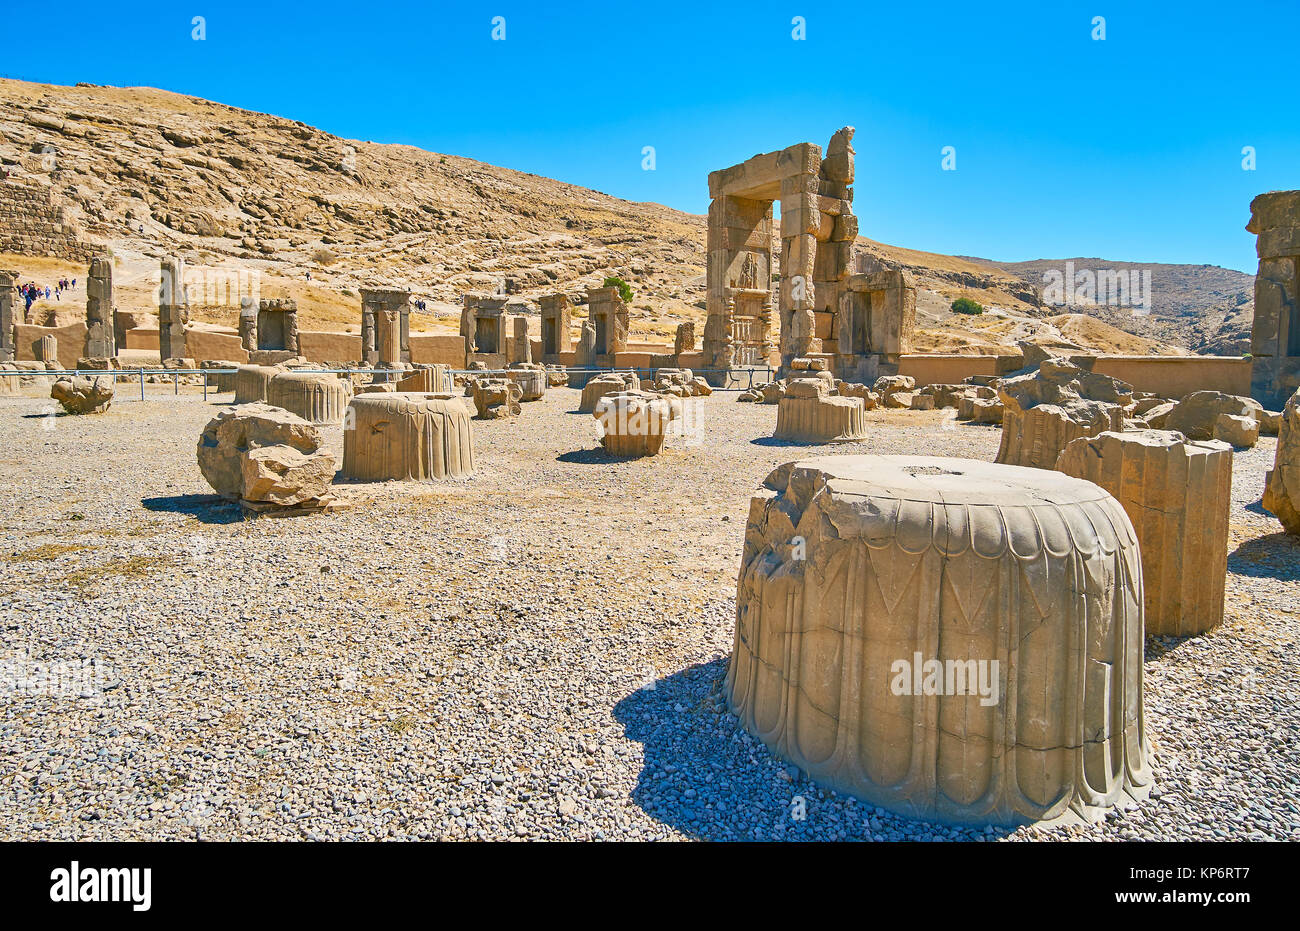 Persepolis was the ceremonial capital of Persian Empire, nowadays it's archaeological site with preserved remains - Stock Image